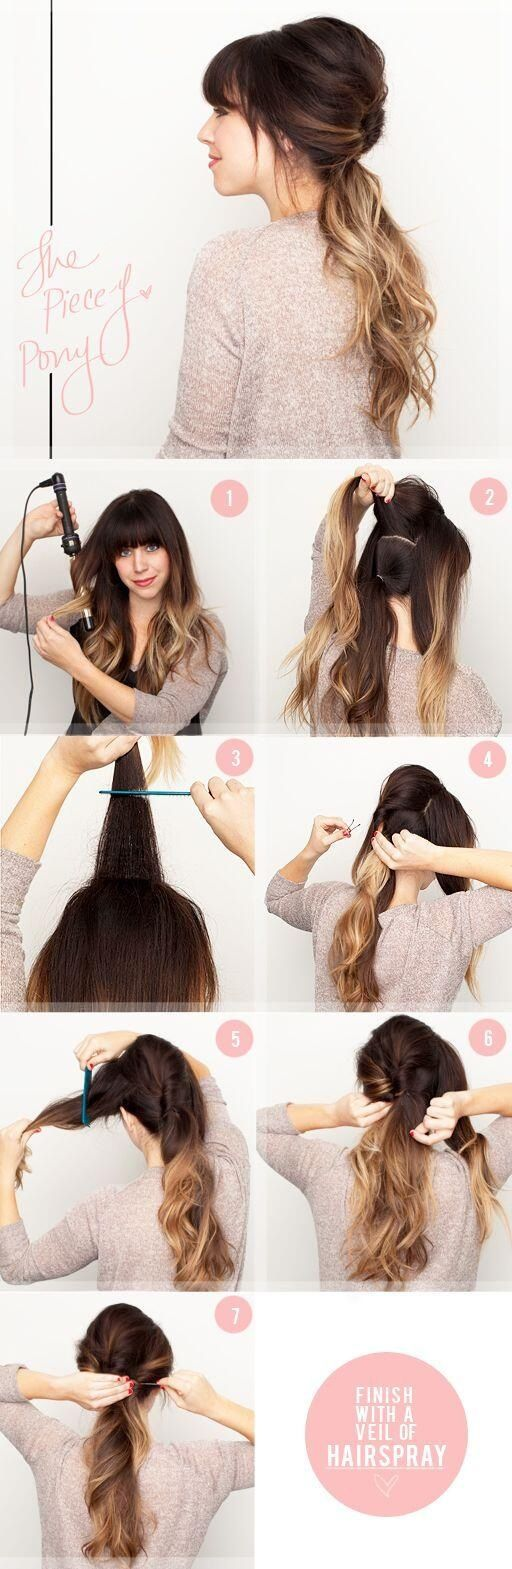 How to make a piece y ponytail !!